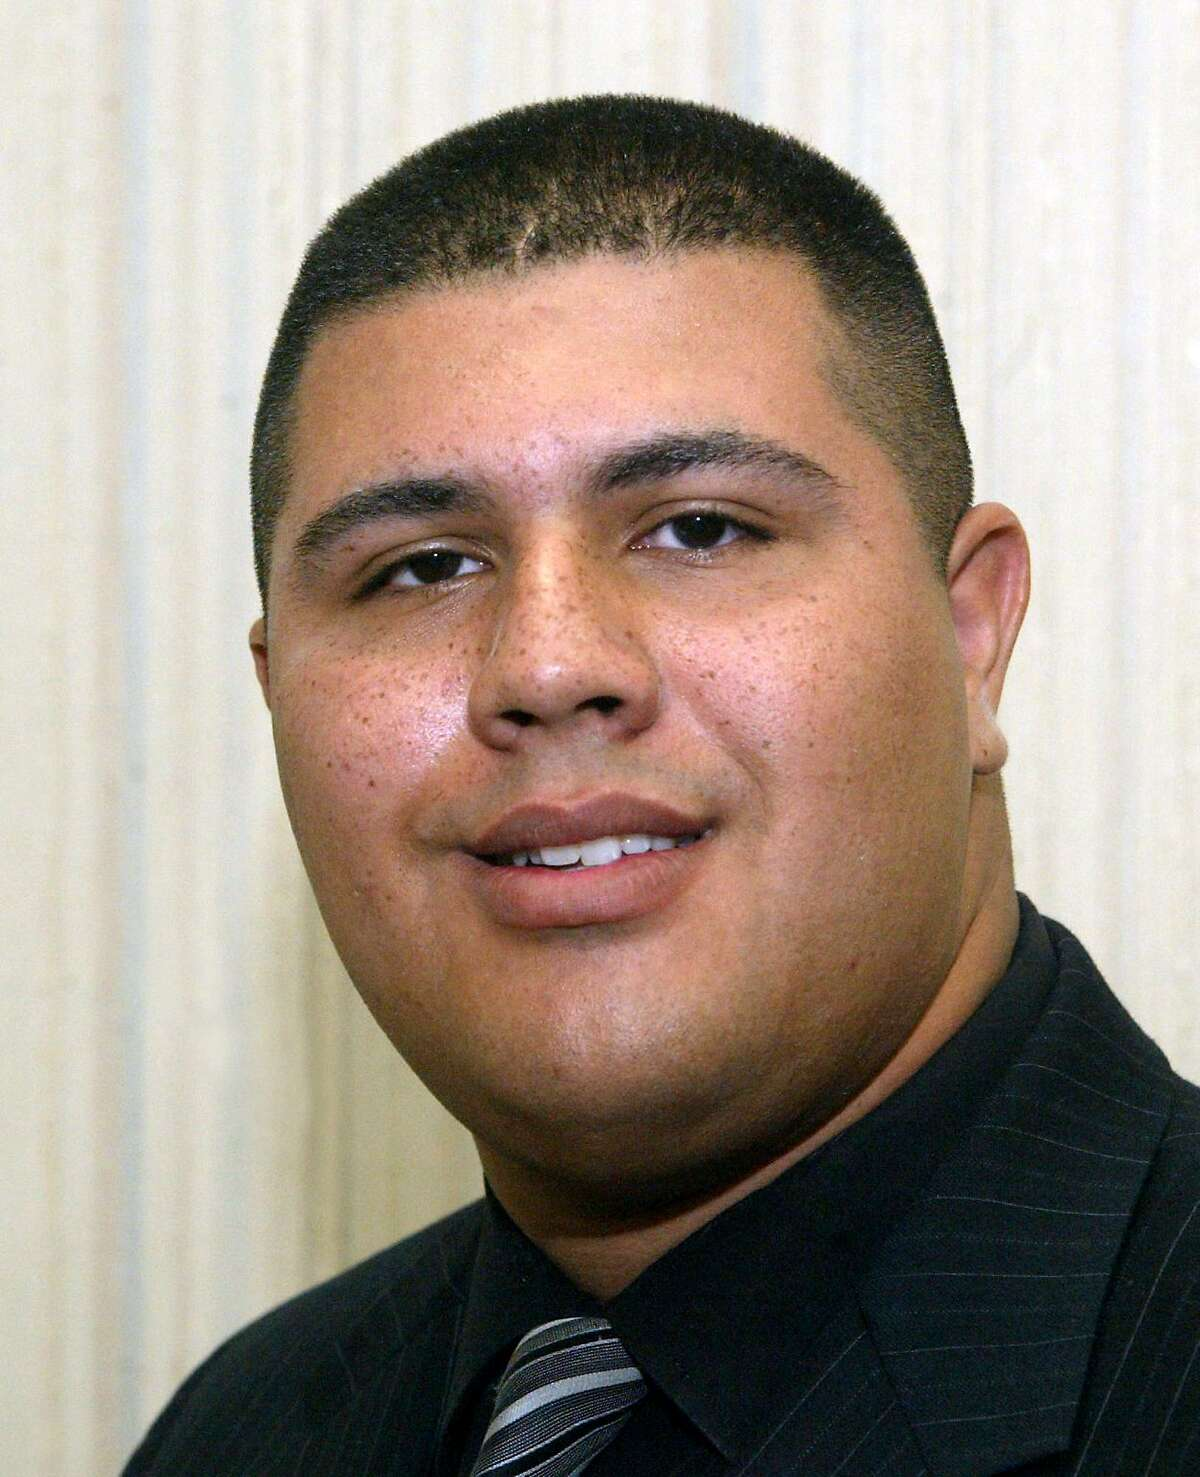 Rep. Chris Rosario, D-Bridgeport, was related by marriage to the 15-year-old shot last month in Bridgeport.